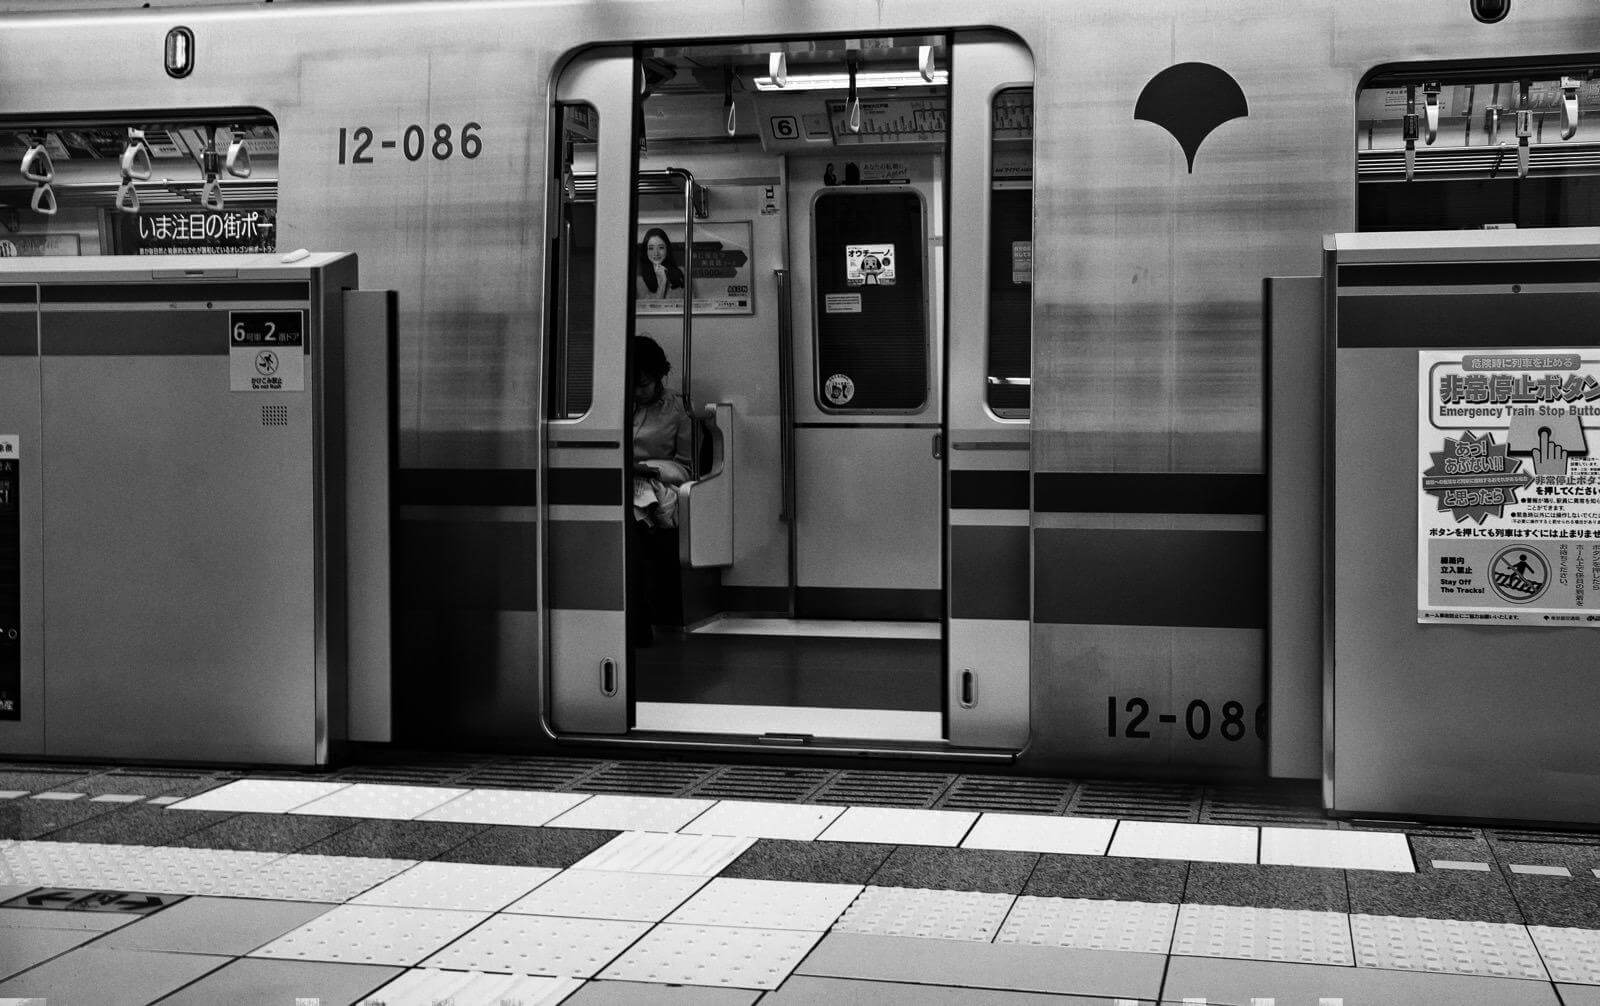 Subway coach in Tokyo, Japan - Photo by Zed Sindelar of CuriousZed Photography